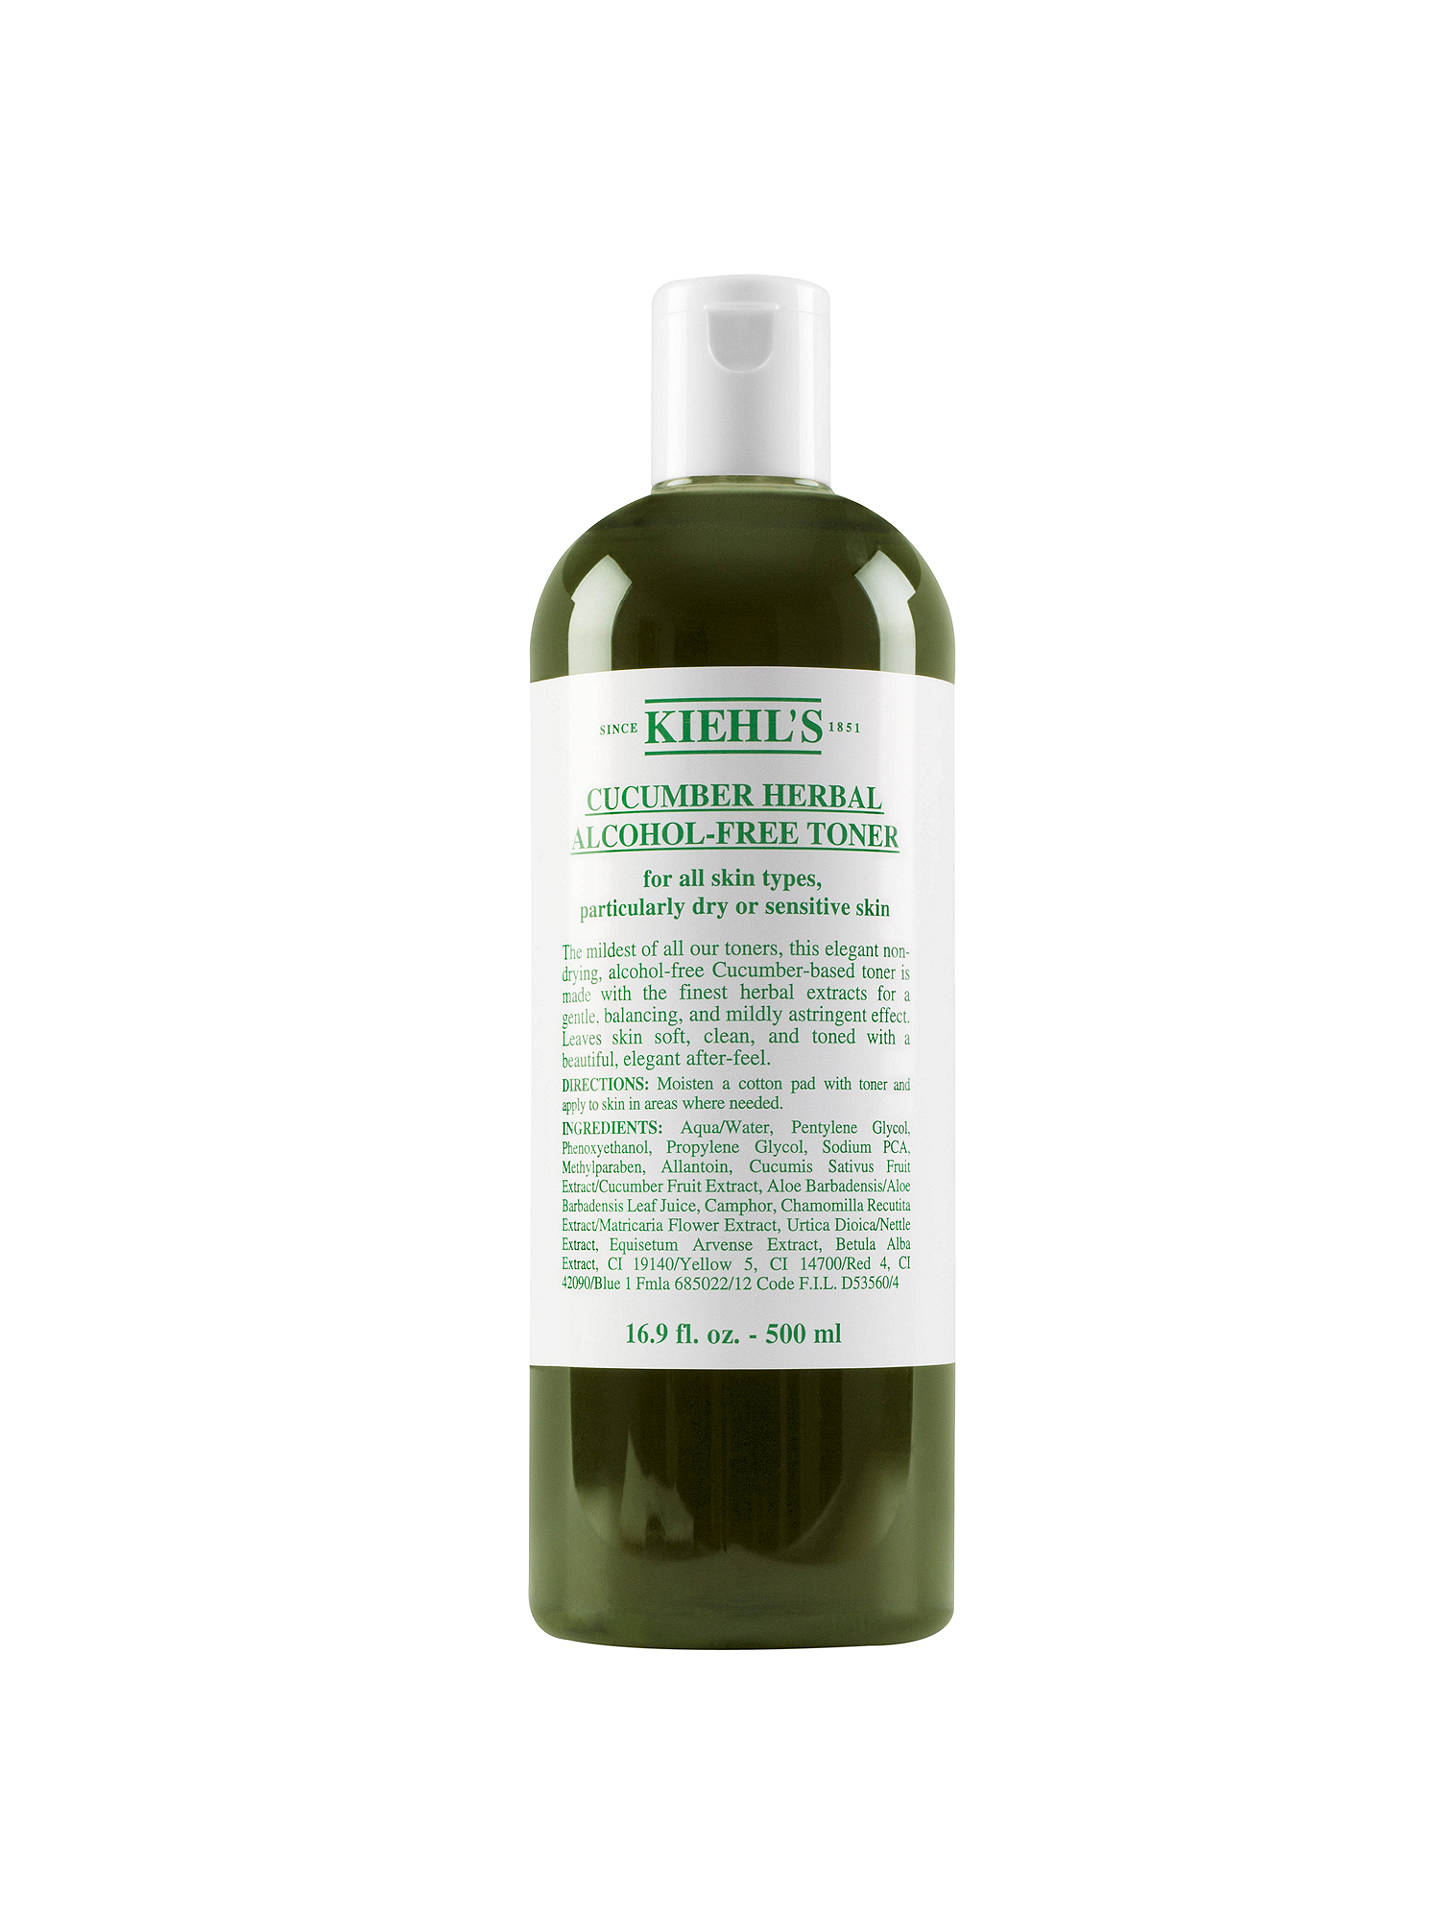 Buy Kiehl's Cucumber Herbal Alcohol-Free Toner, 500ml Online at johnlewis.com